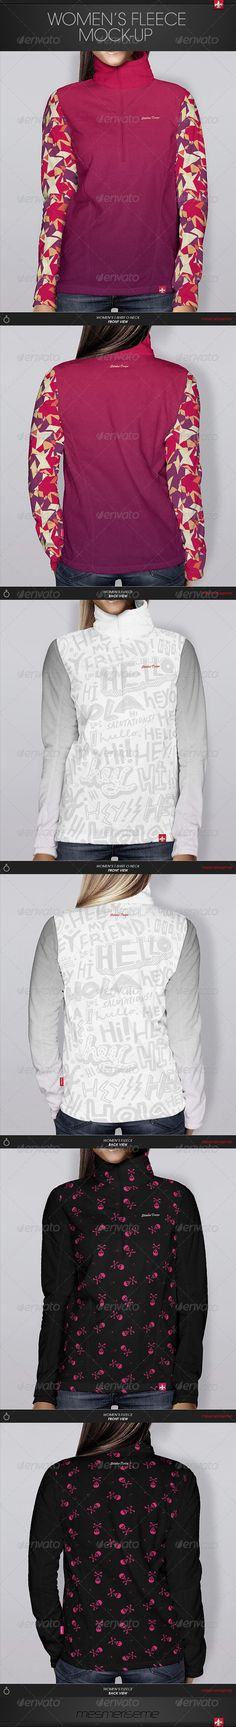 Women's Fleece Mock-up  #GraphicRiver         Women's Fleece Blouse Mock-up   4 psd files 1539×1786 px 72 dpi (2 displacement maps);  front and back view;  You can choose between 3 color modes of material: bright colors, hue colors and dark colors and pick your own color or gradient on: neck material, corps material and sleeves material;  You can put your own design using smart objects and displacement maps. You can make it on front and back side: on neck material, corps material and sleeves…